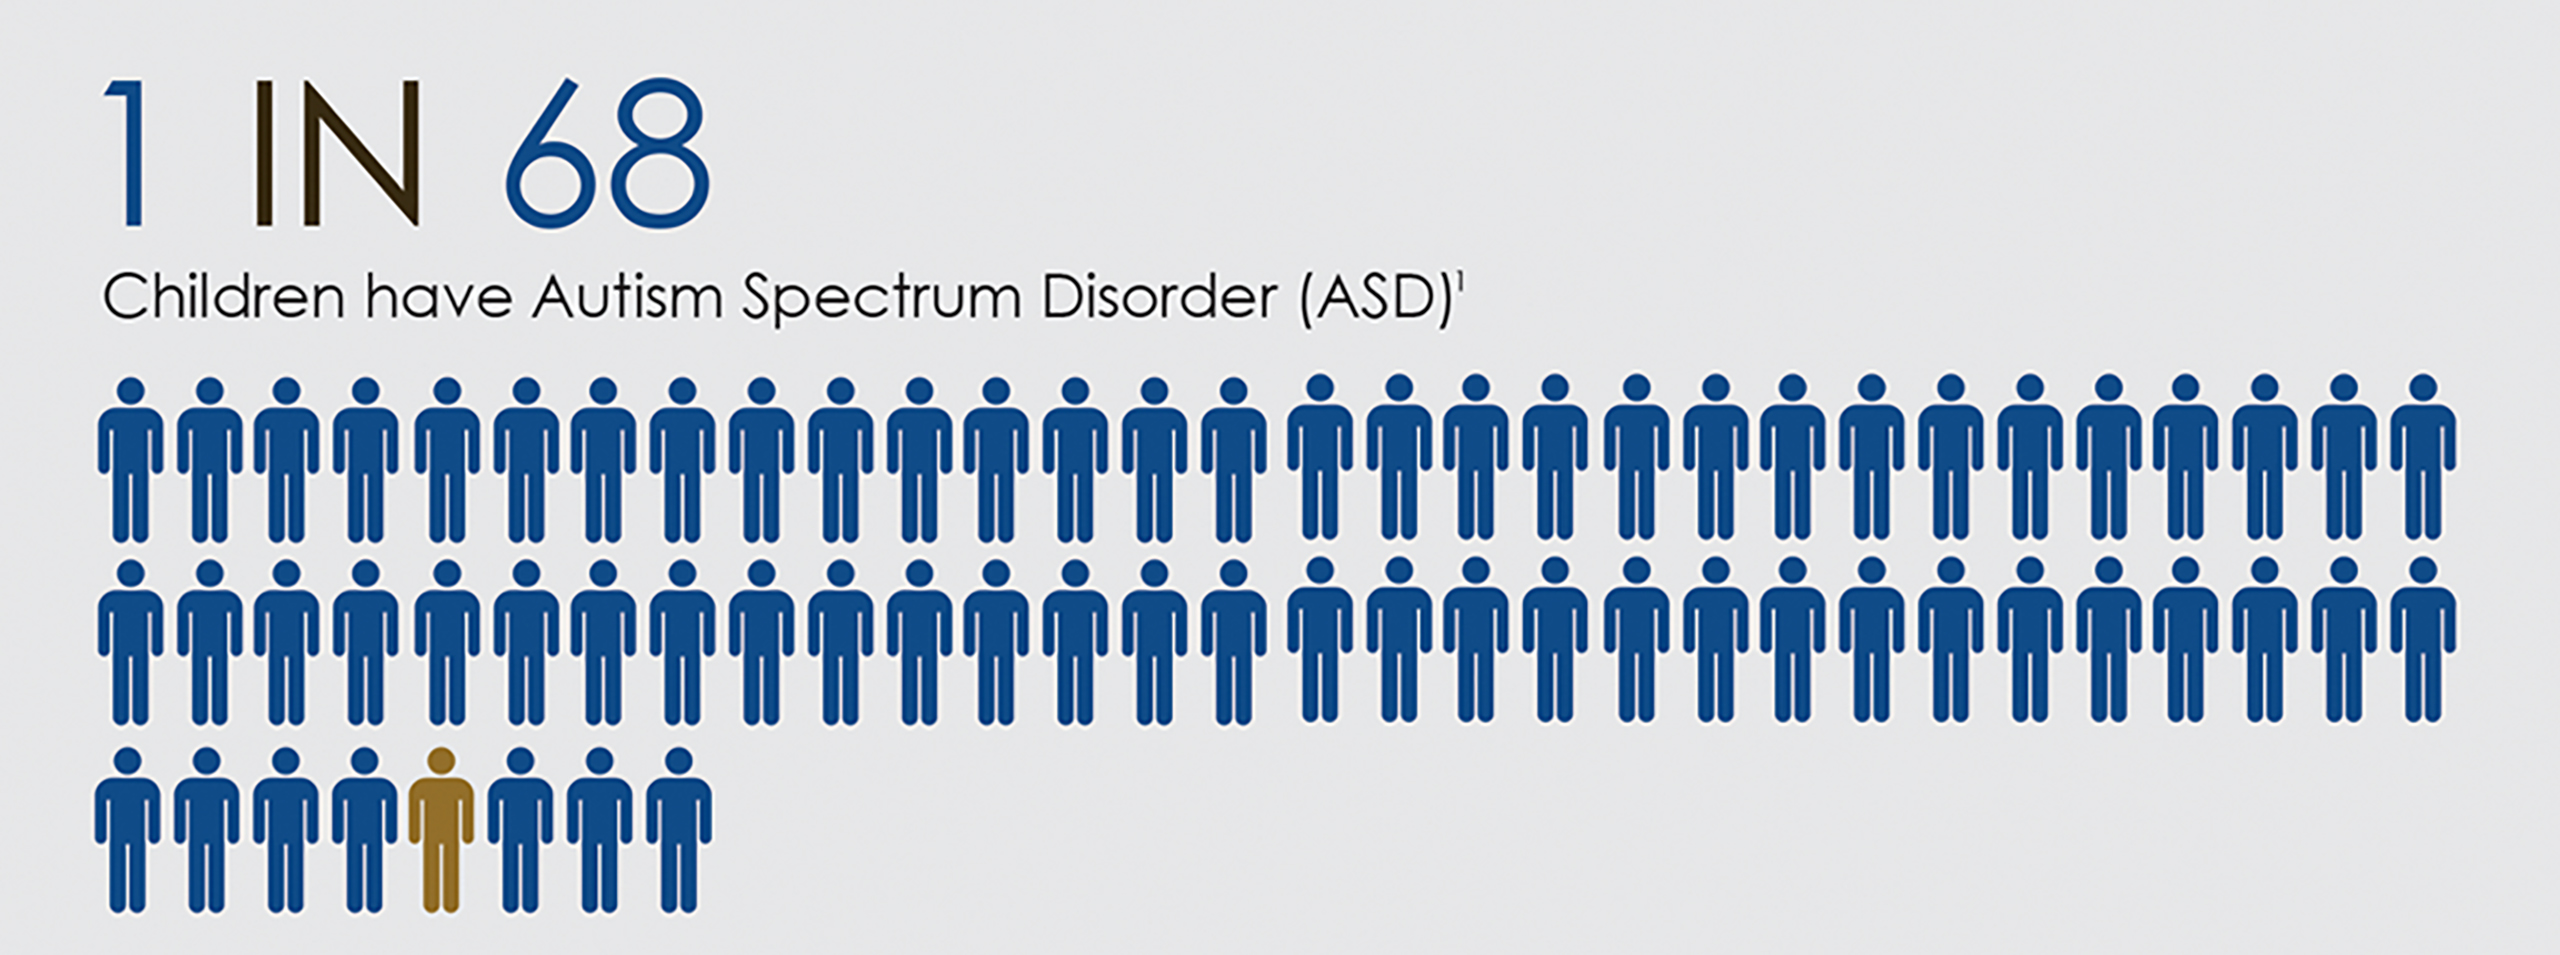 What is Autism Spectrum Disorder Integragen